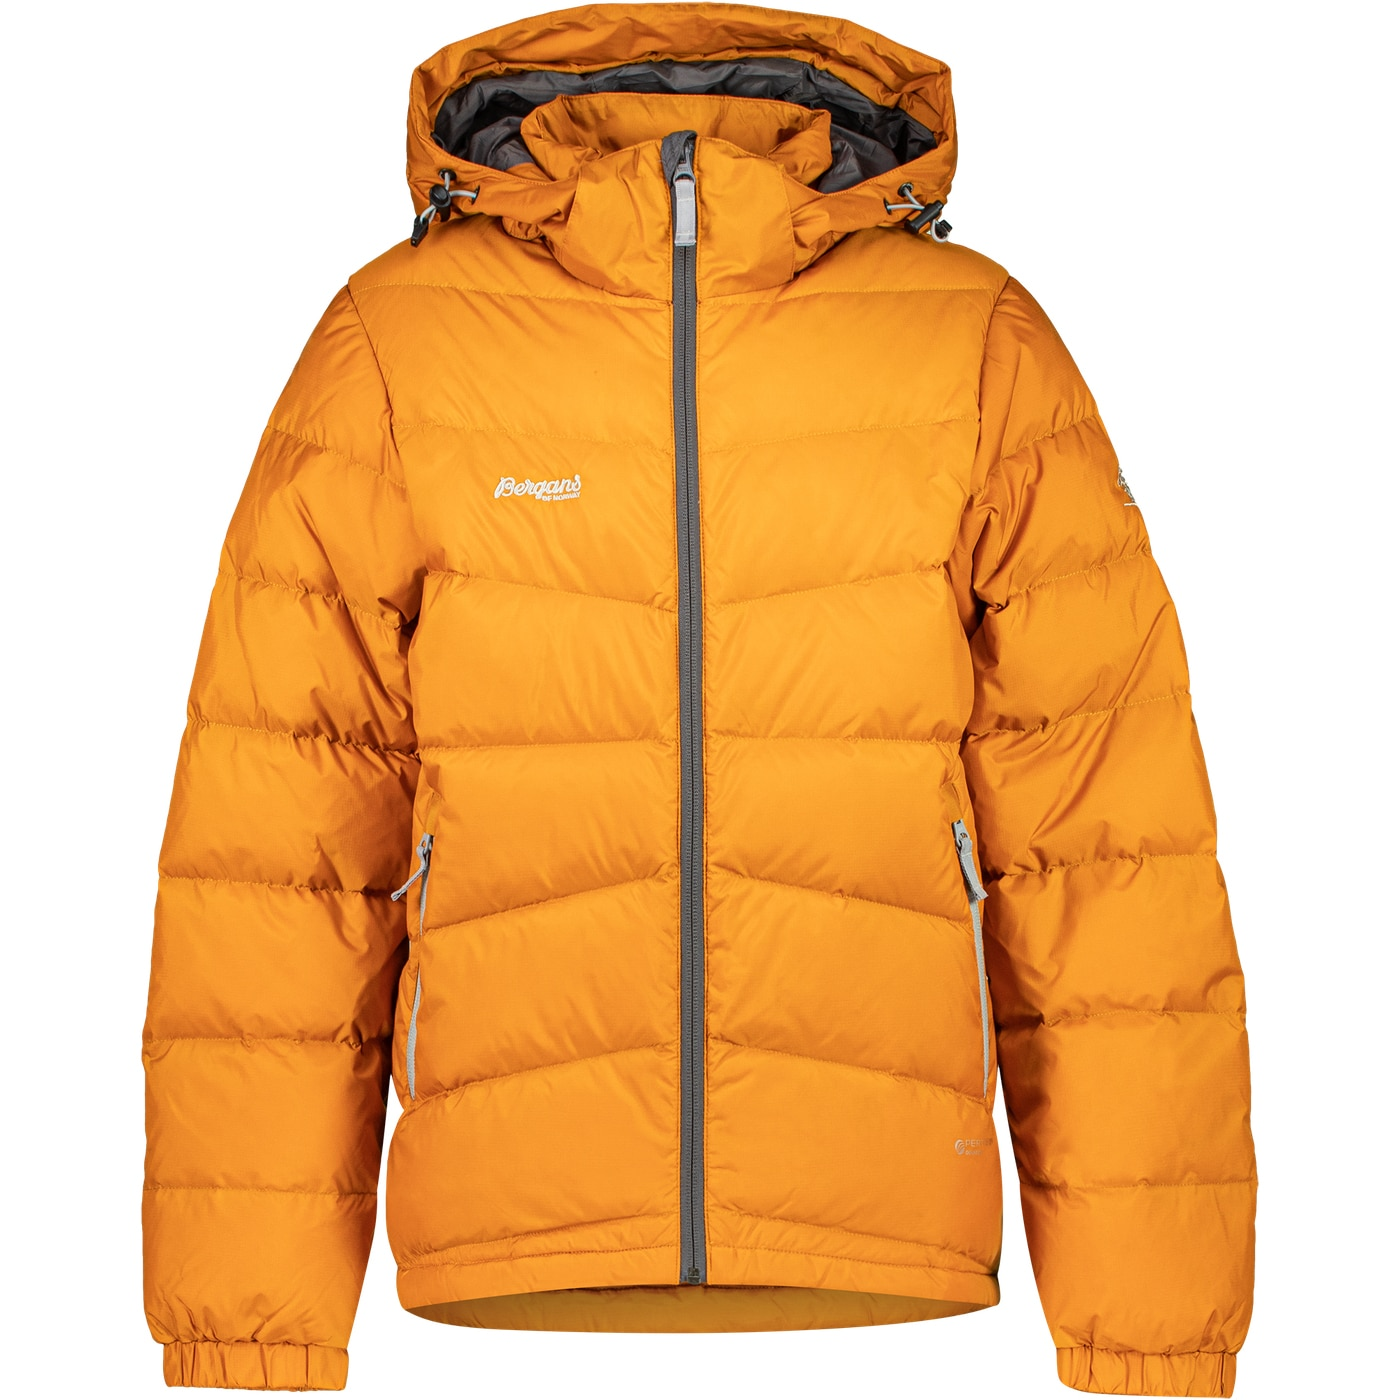 Wadahl Down Youth Jacket